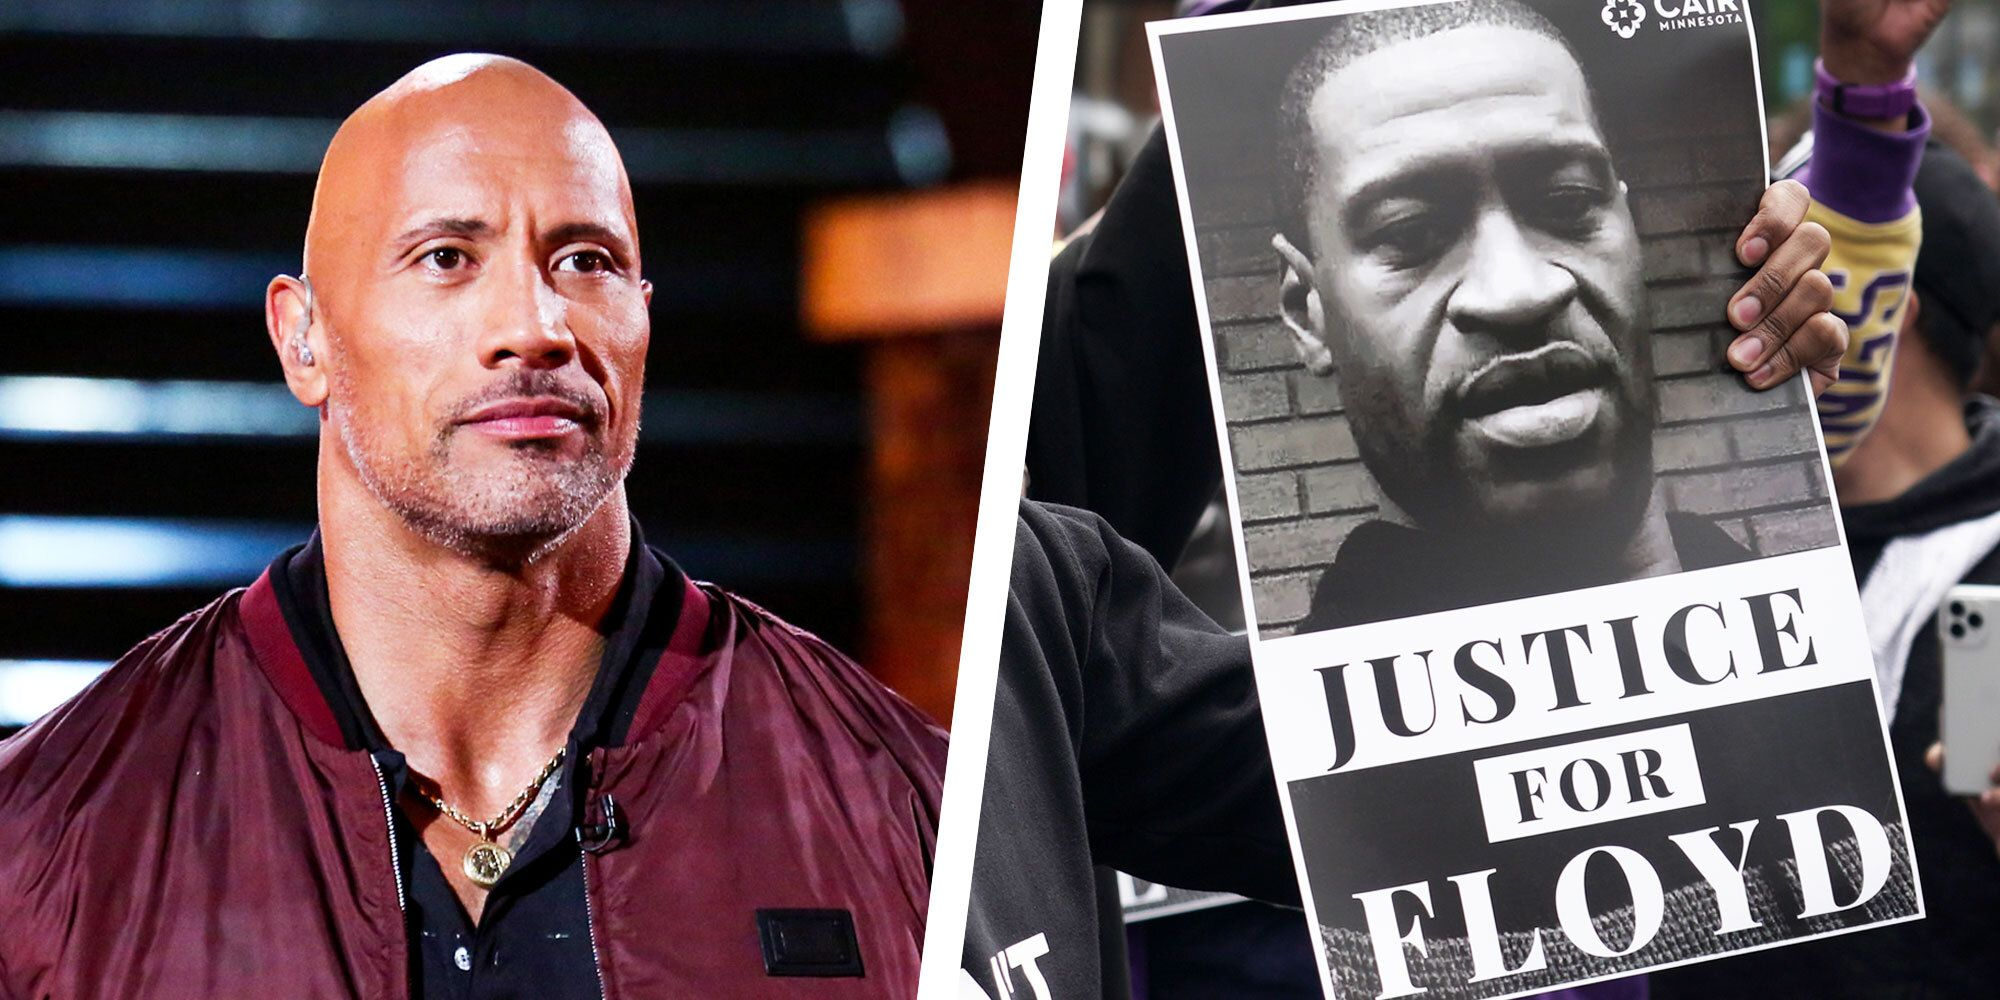 The Rock Calls to 'Normalise Equality' in Moving Instagram Tribute to George Floyd